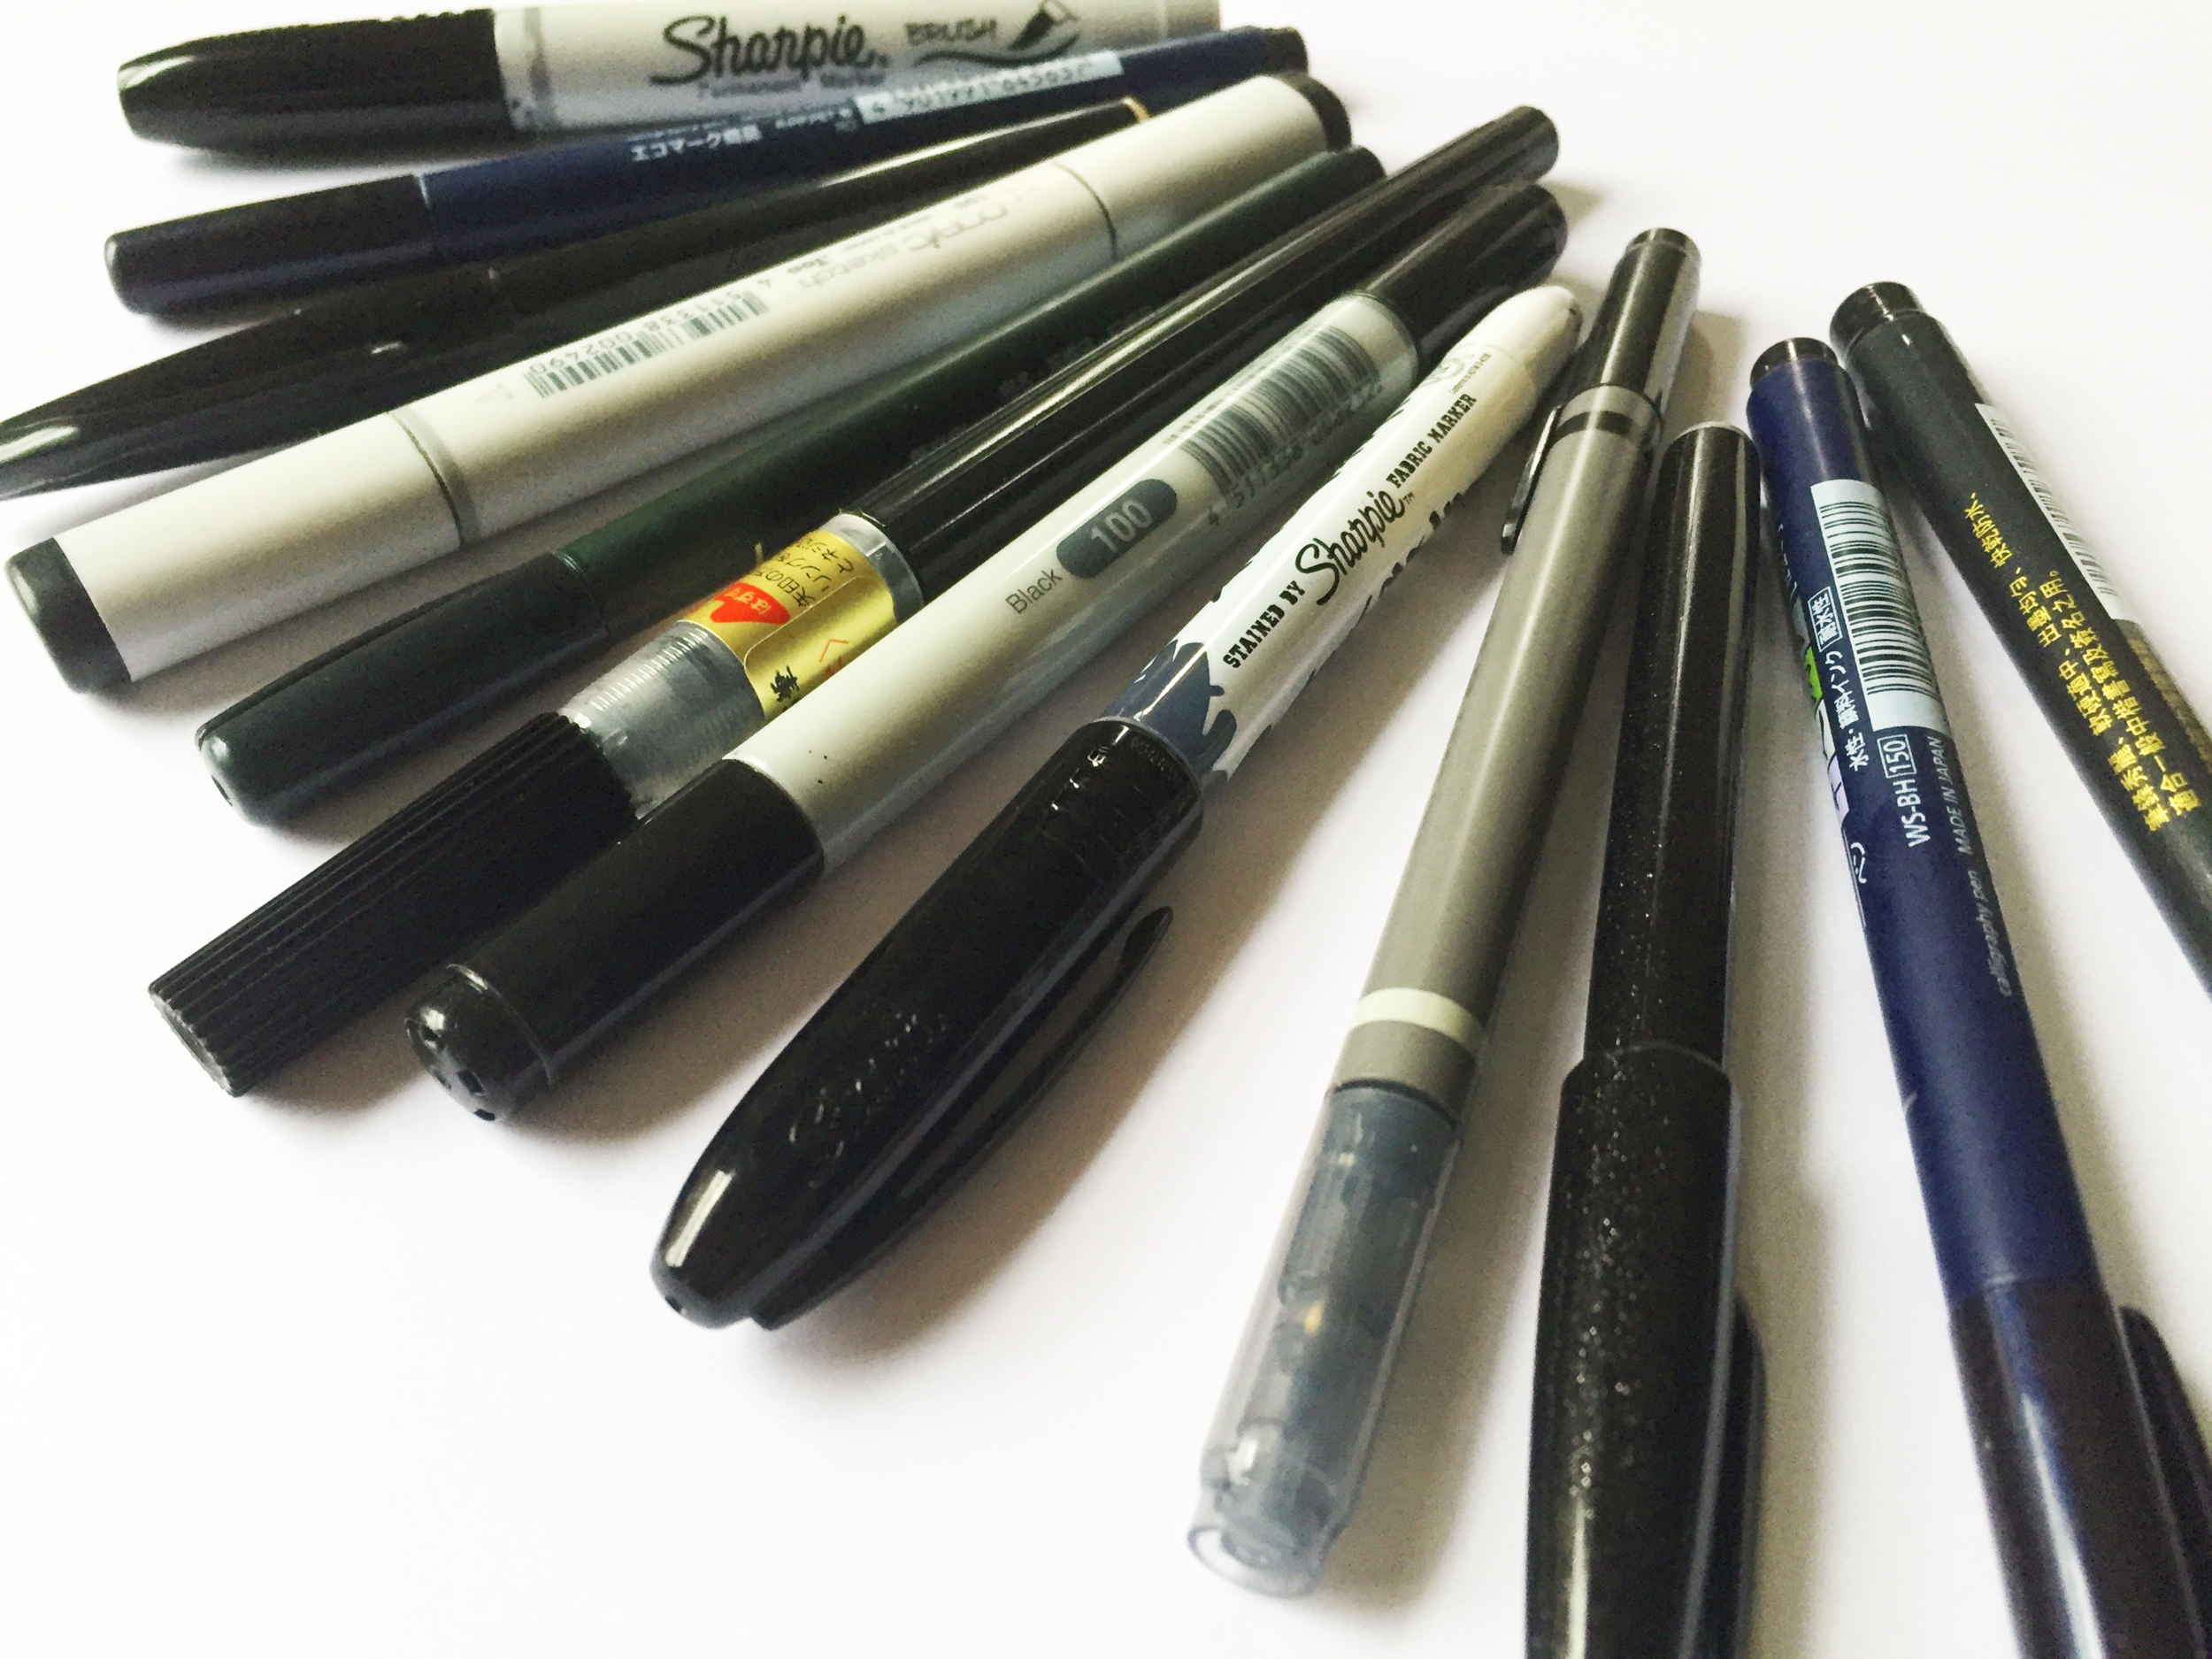 Brush pens: so many to choose from!